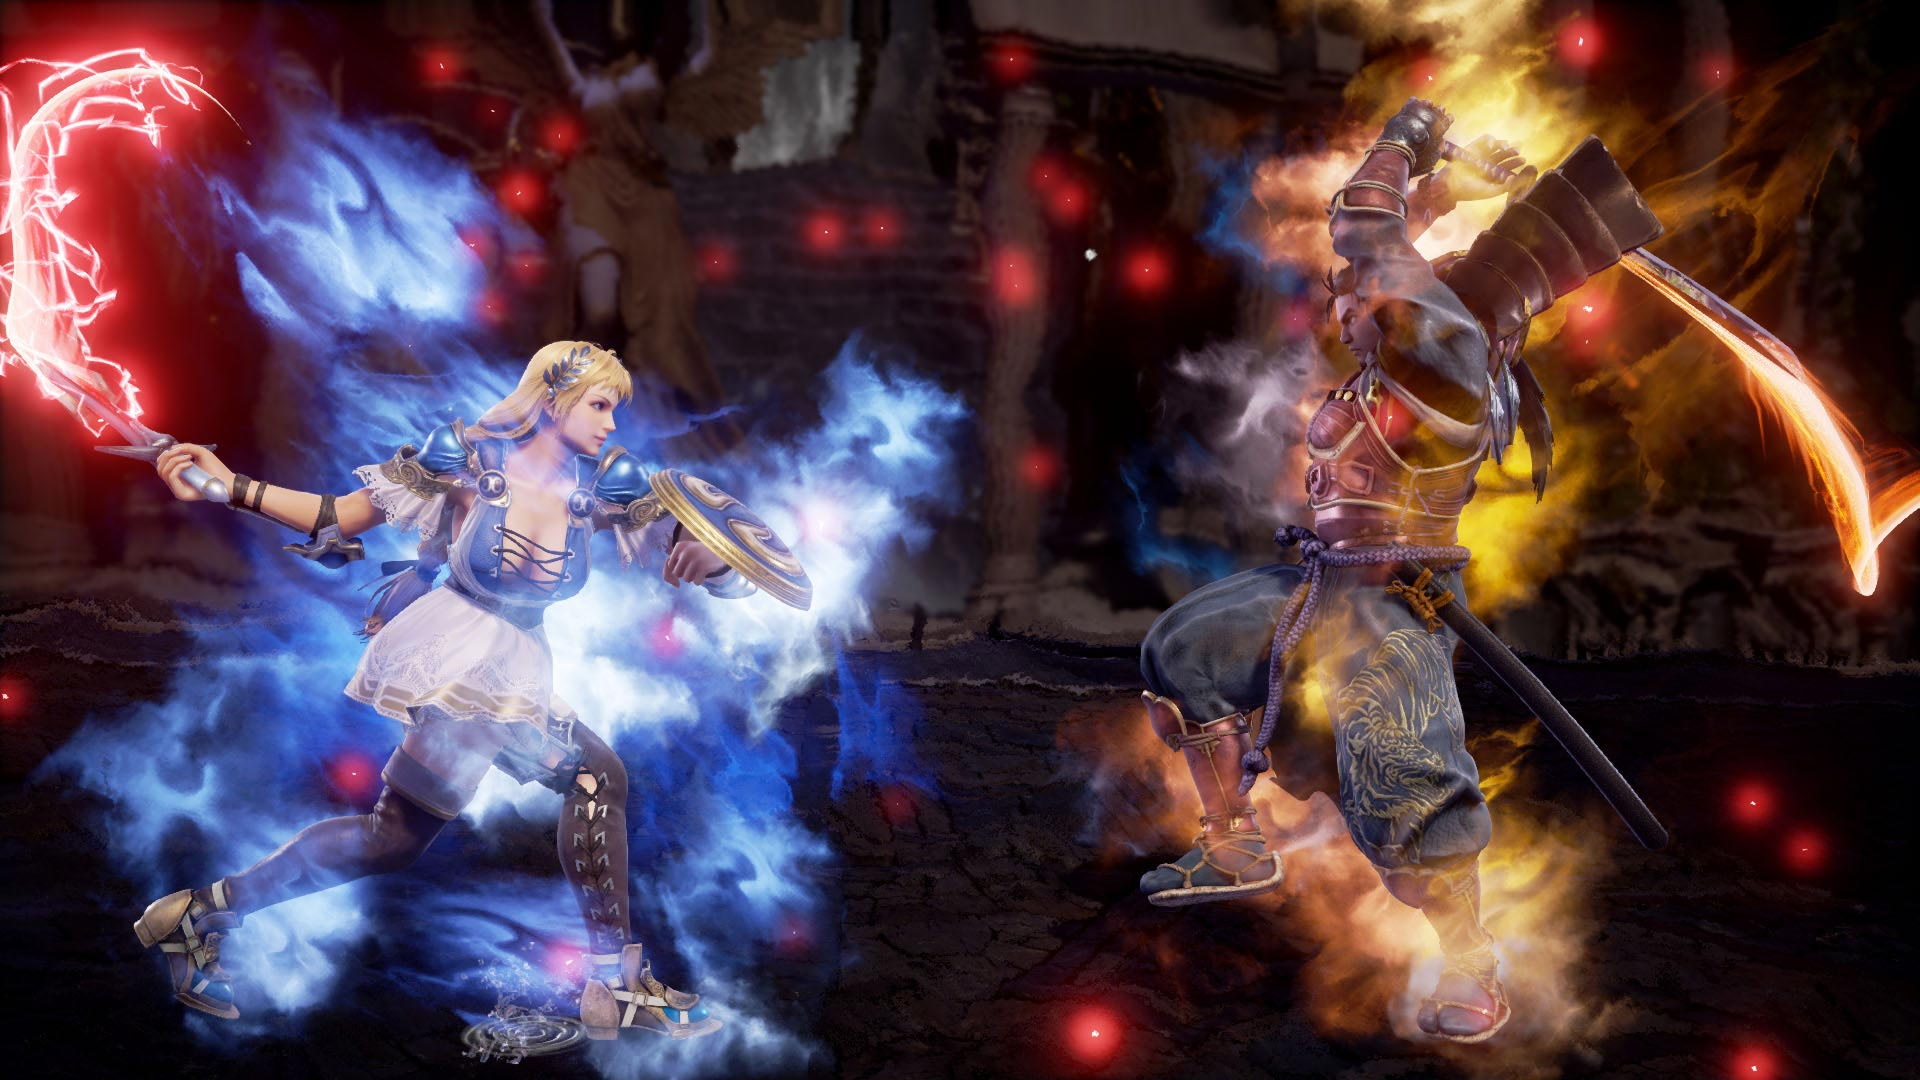 Soul Calibur 6 screeshots 1 out of 16 image gallery